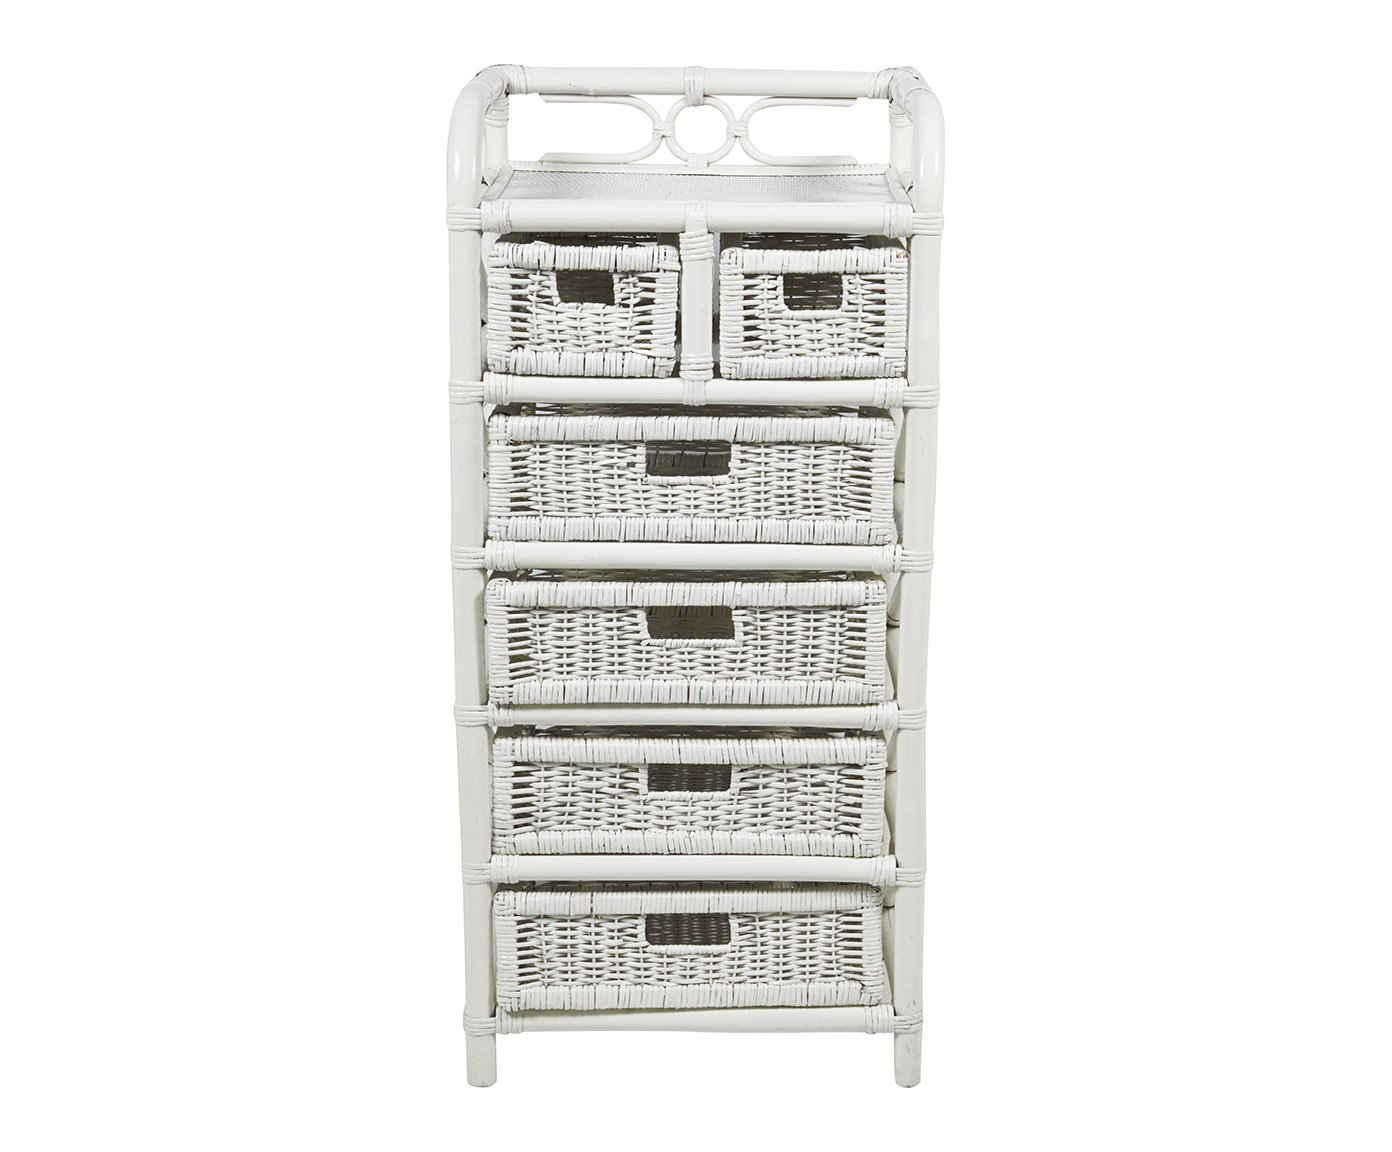 chiffonnier rotin blanc hesp ride 4339. Black Bedroom Furniture Sets. Home Design Ideas